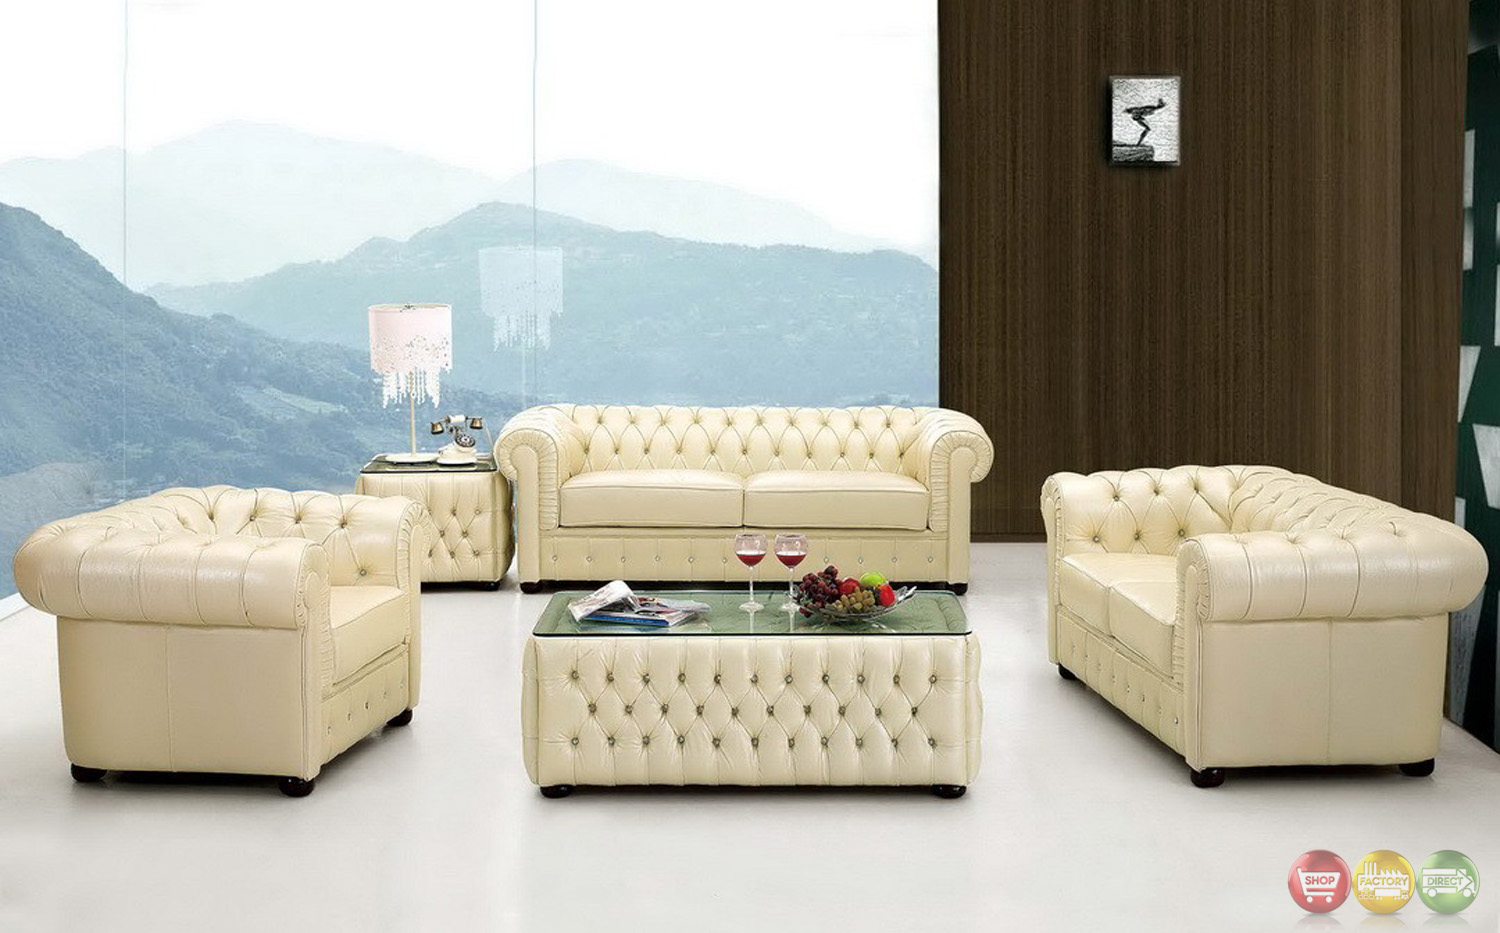 leather chesterfield sofa beige 2 seater and 1 chair 258 rhinestone tufted in cream top